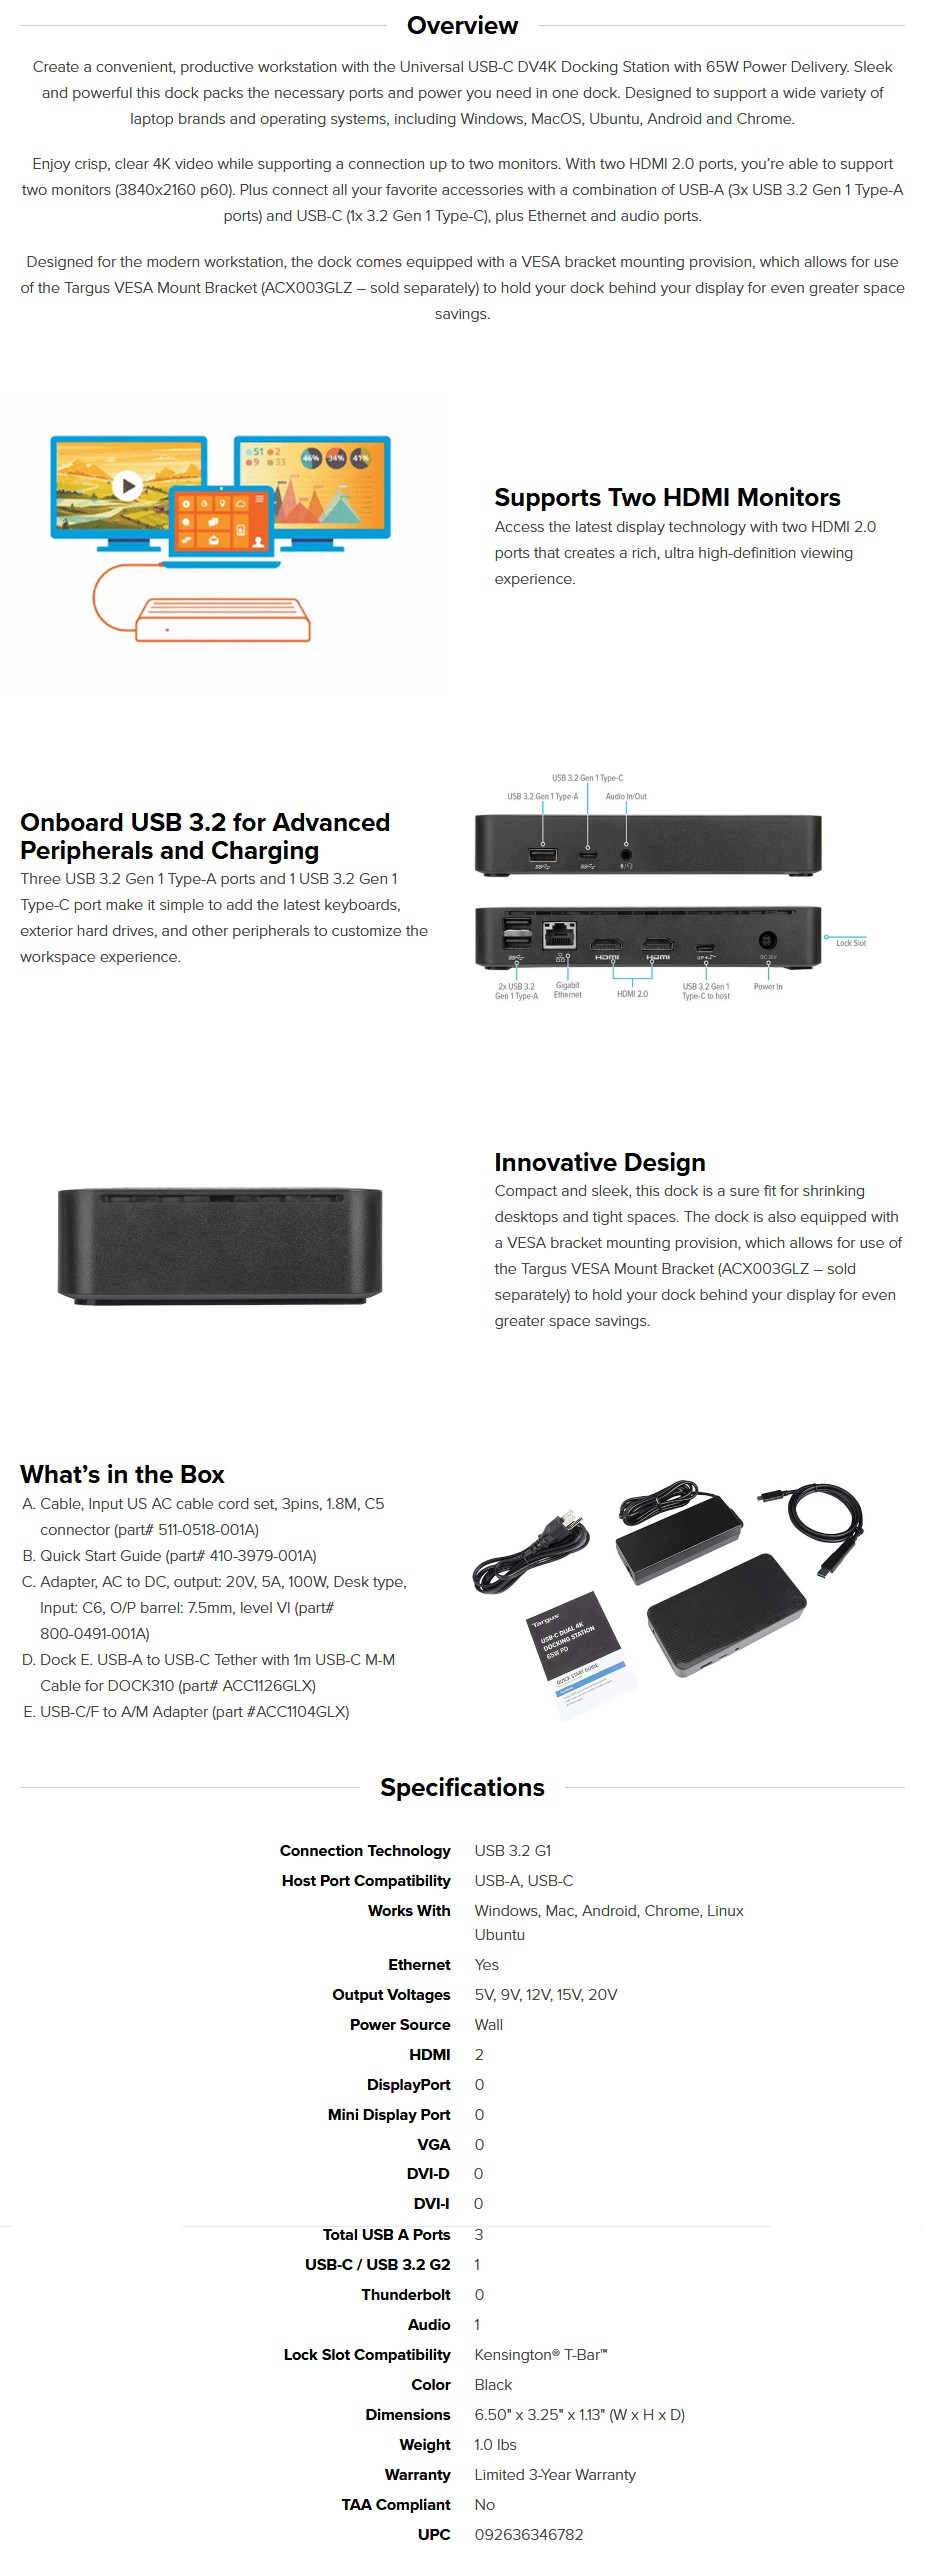 Targus Universal USB-C DV4K Docking Station with 65W Power Delivery - Overview 1